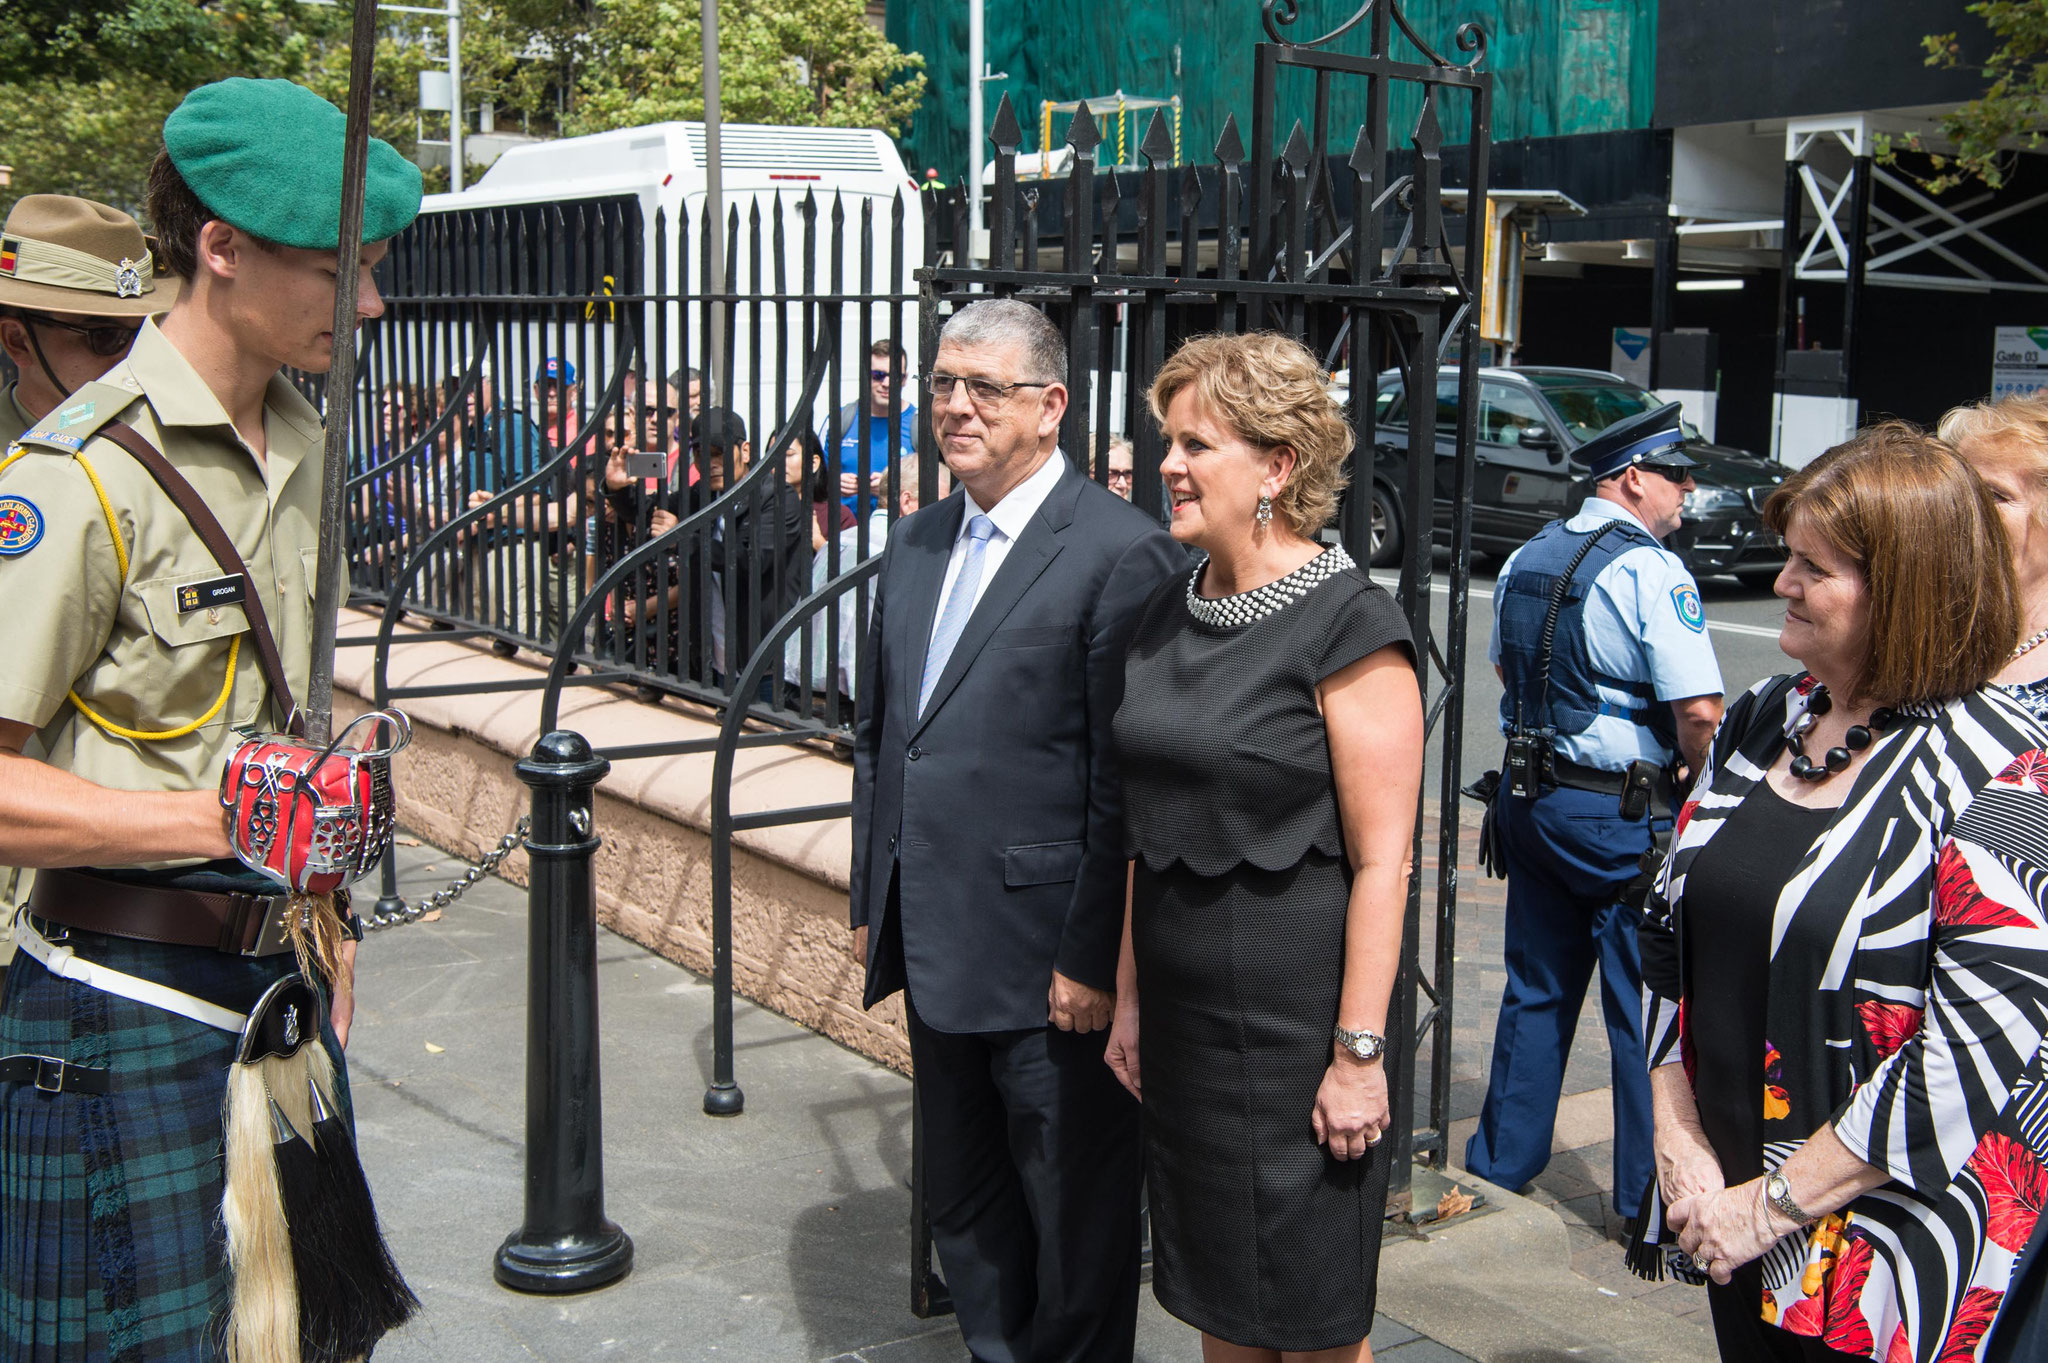 Vice Patron Hon John Ajaka and Her Excellency arrive at NSW Parliamnet House